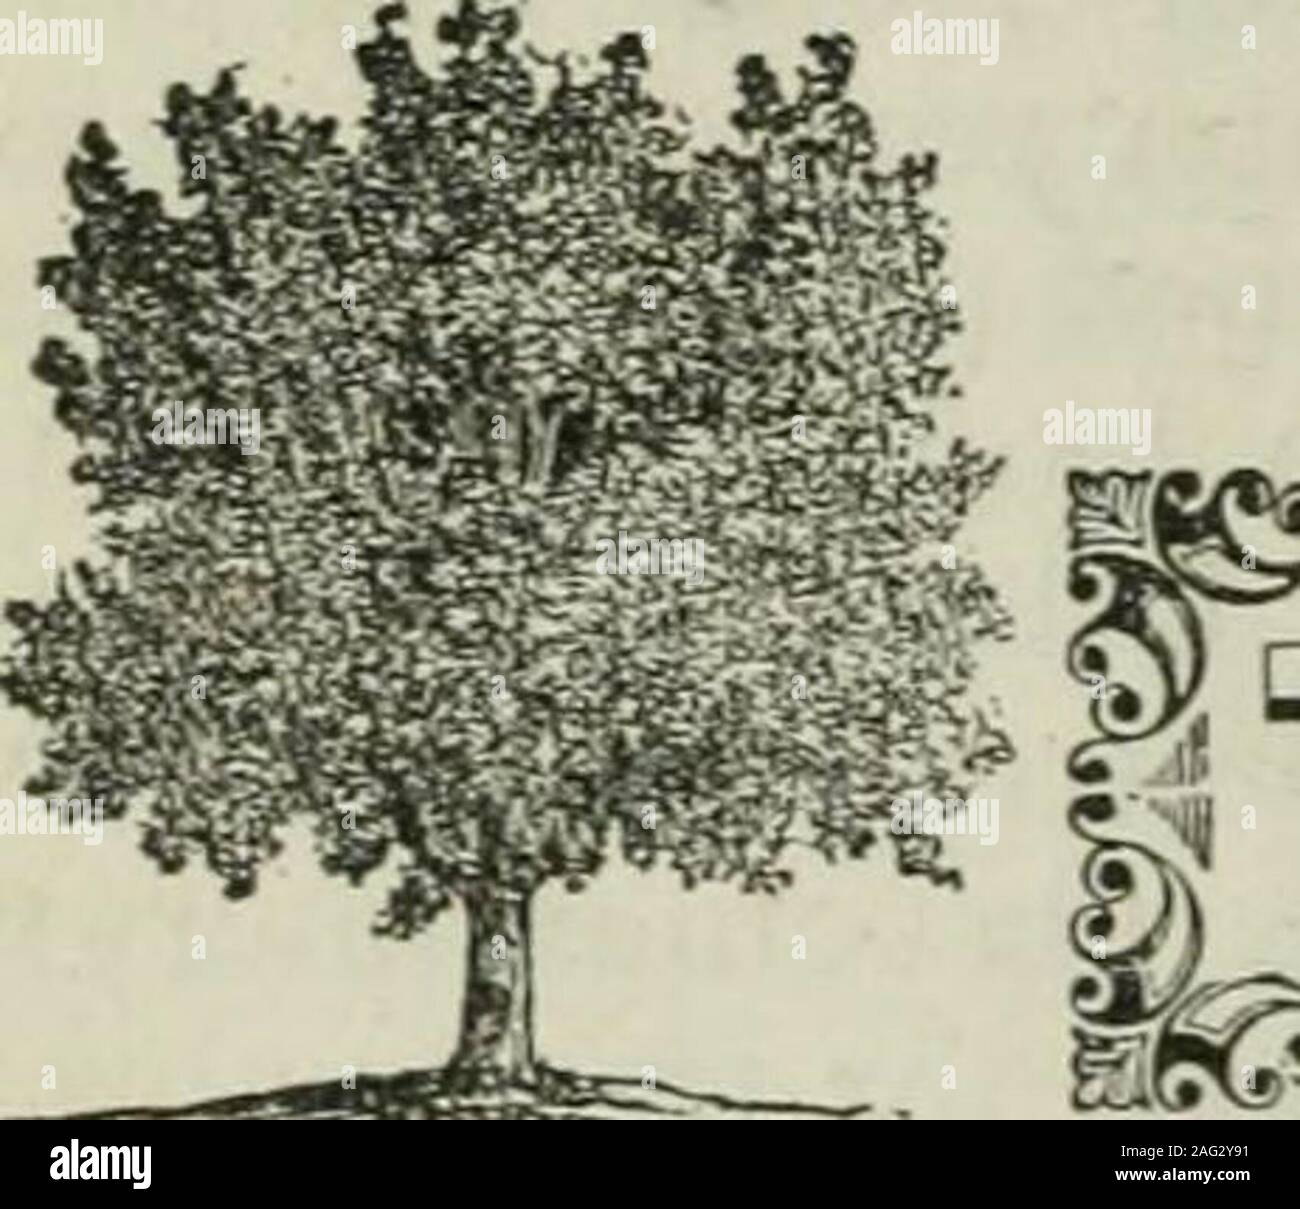 . www.flickr.com/photos/internetarchivebookimages/tags/book.... ple, Mock Plane-tree, Plane-tree, European S)camore, (LiNN^cs, Species Plantarum.? I MicHAux, North American Sylva.?{ Don, Millers Dictionary. I LocDON, Arboretum Britannicum.Selby, British Forest Trees. France. Germany. Italy. England.Scotland.United States. IMrications. The botanic name, pseiido-platanus, is derived from the Latin, and signifies false plane-tree. The other namare generally significant in themselves. Engravings. Michaux. North American Sylva, pi. 44; Loudon, Arboretum Britannicum, v., pi. 32; Selby, British Fores Stock Photo